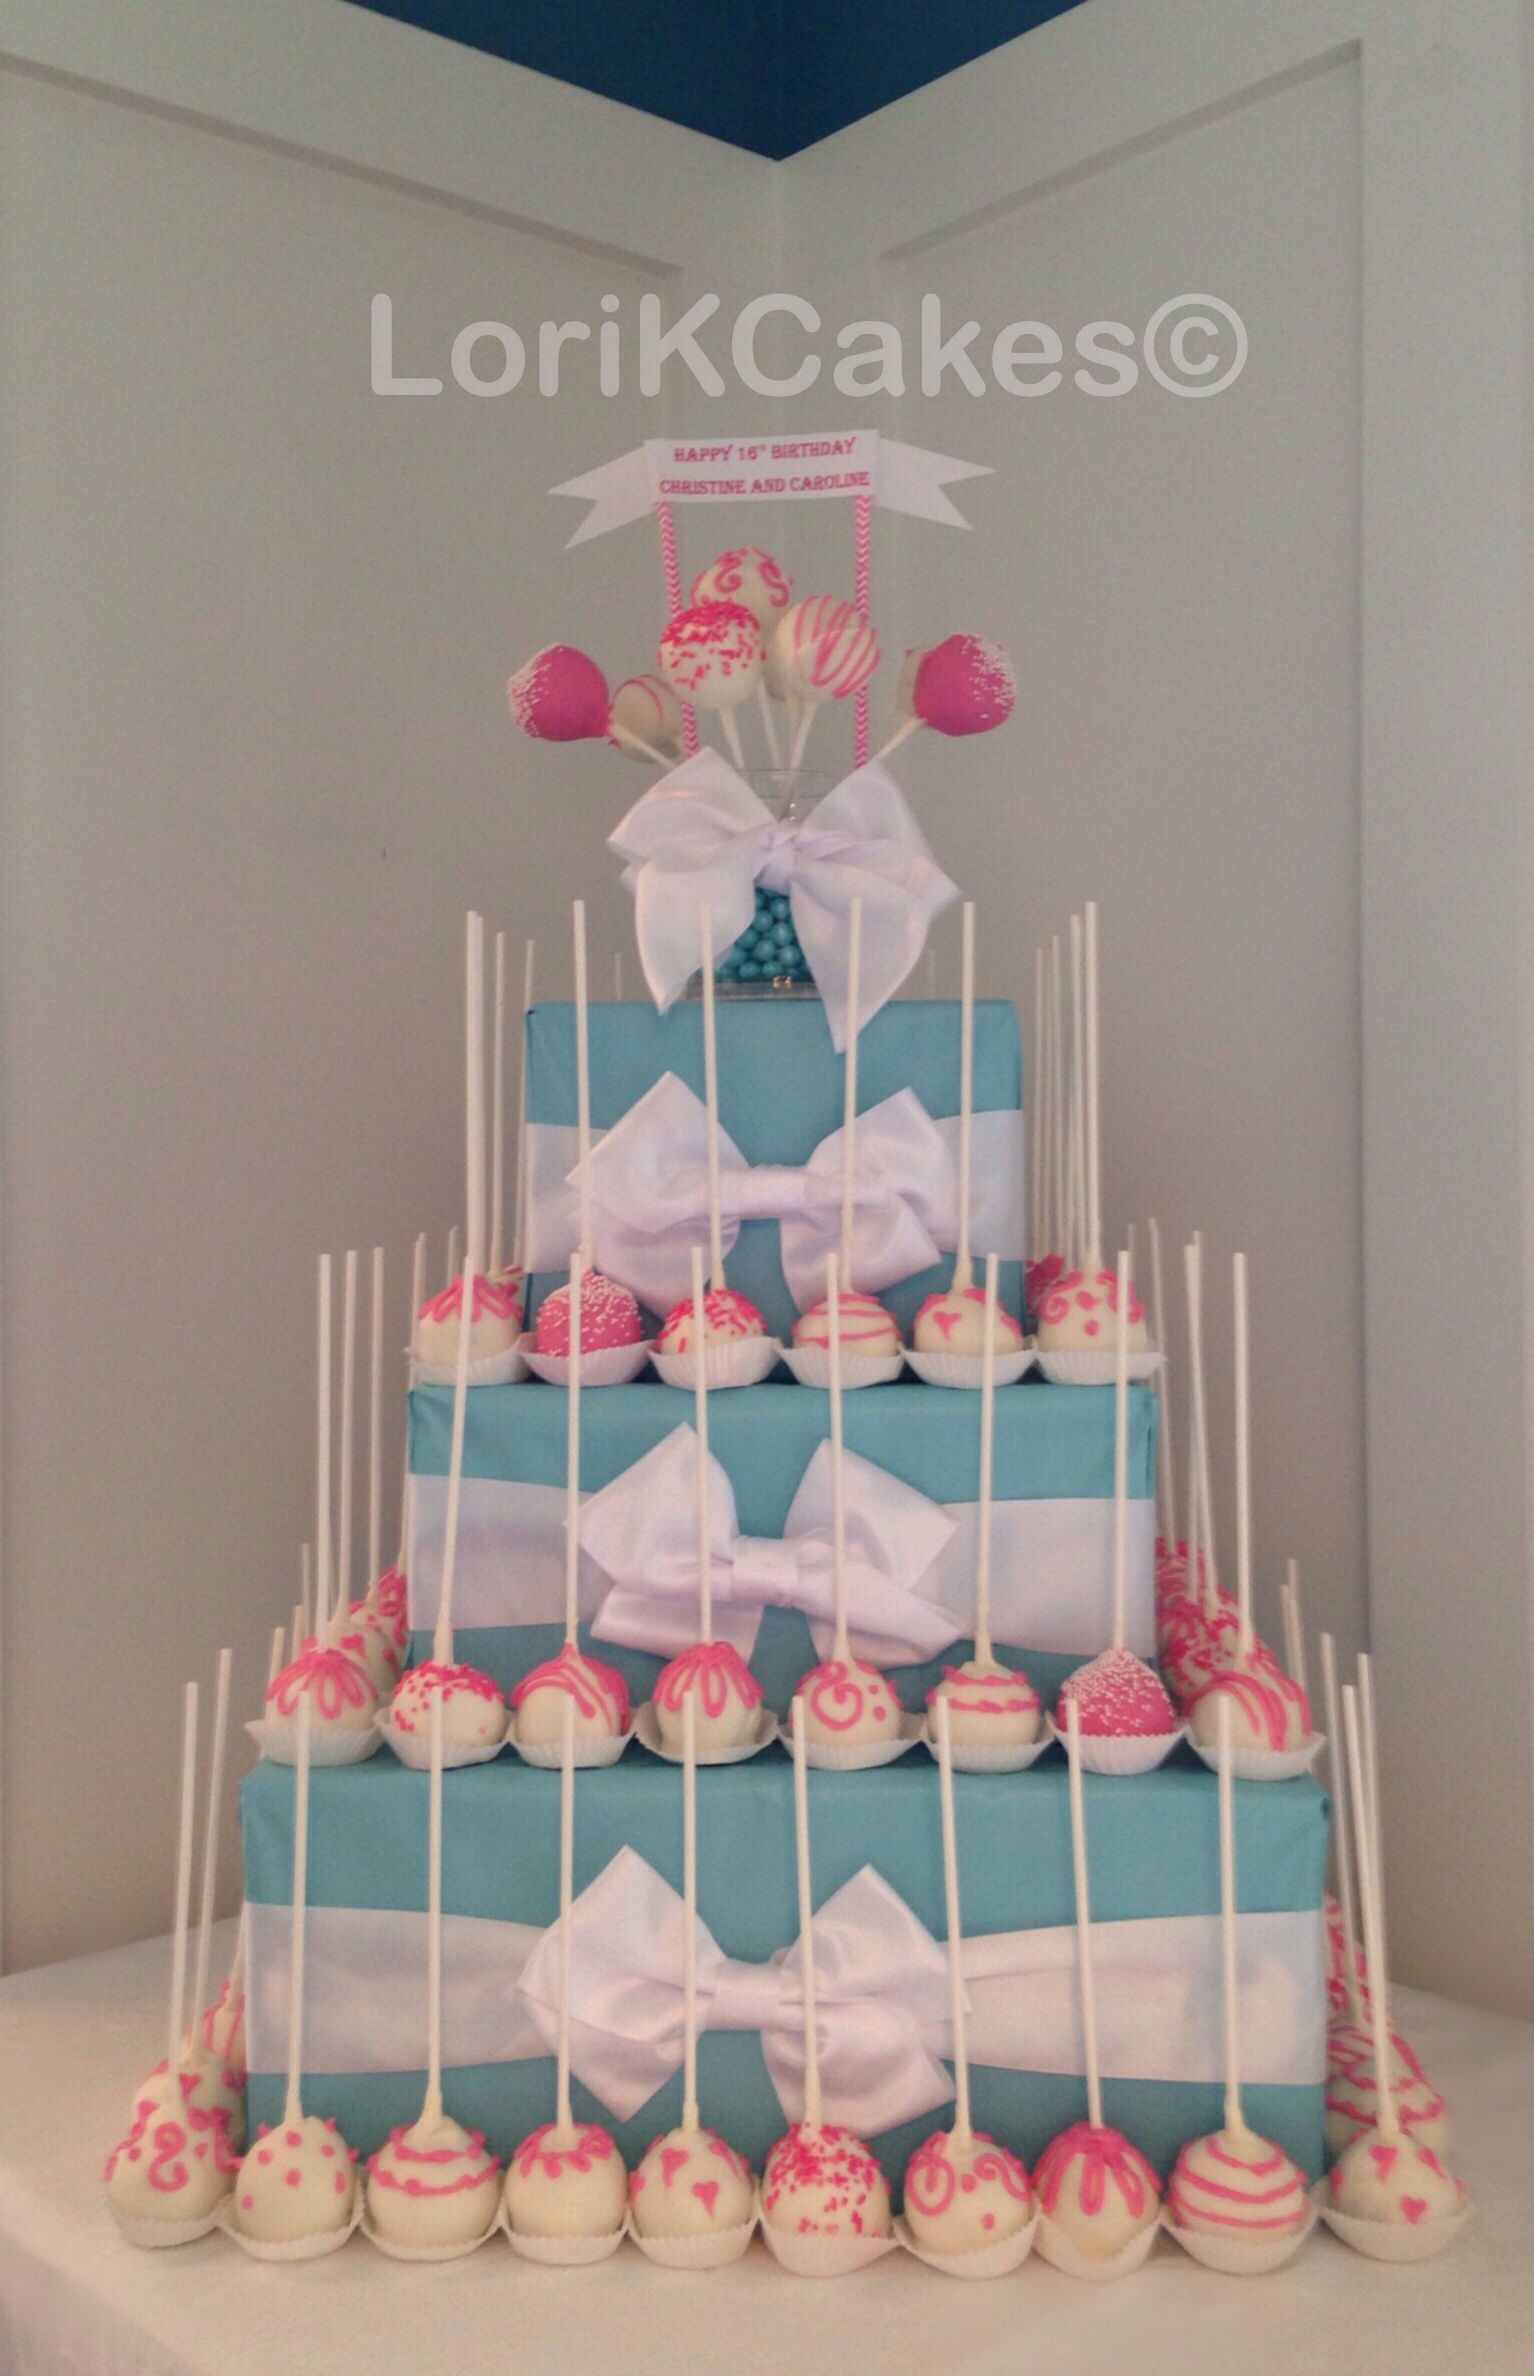 Birthday Cake Flavor Ideas Pink And White Cake Pops Birthday Cake Flavor Cake Pops Handmade